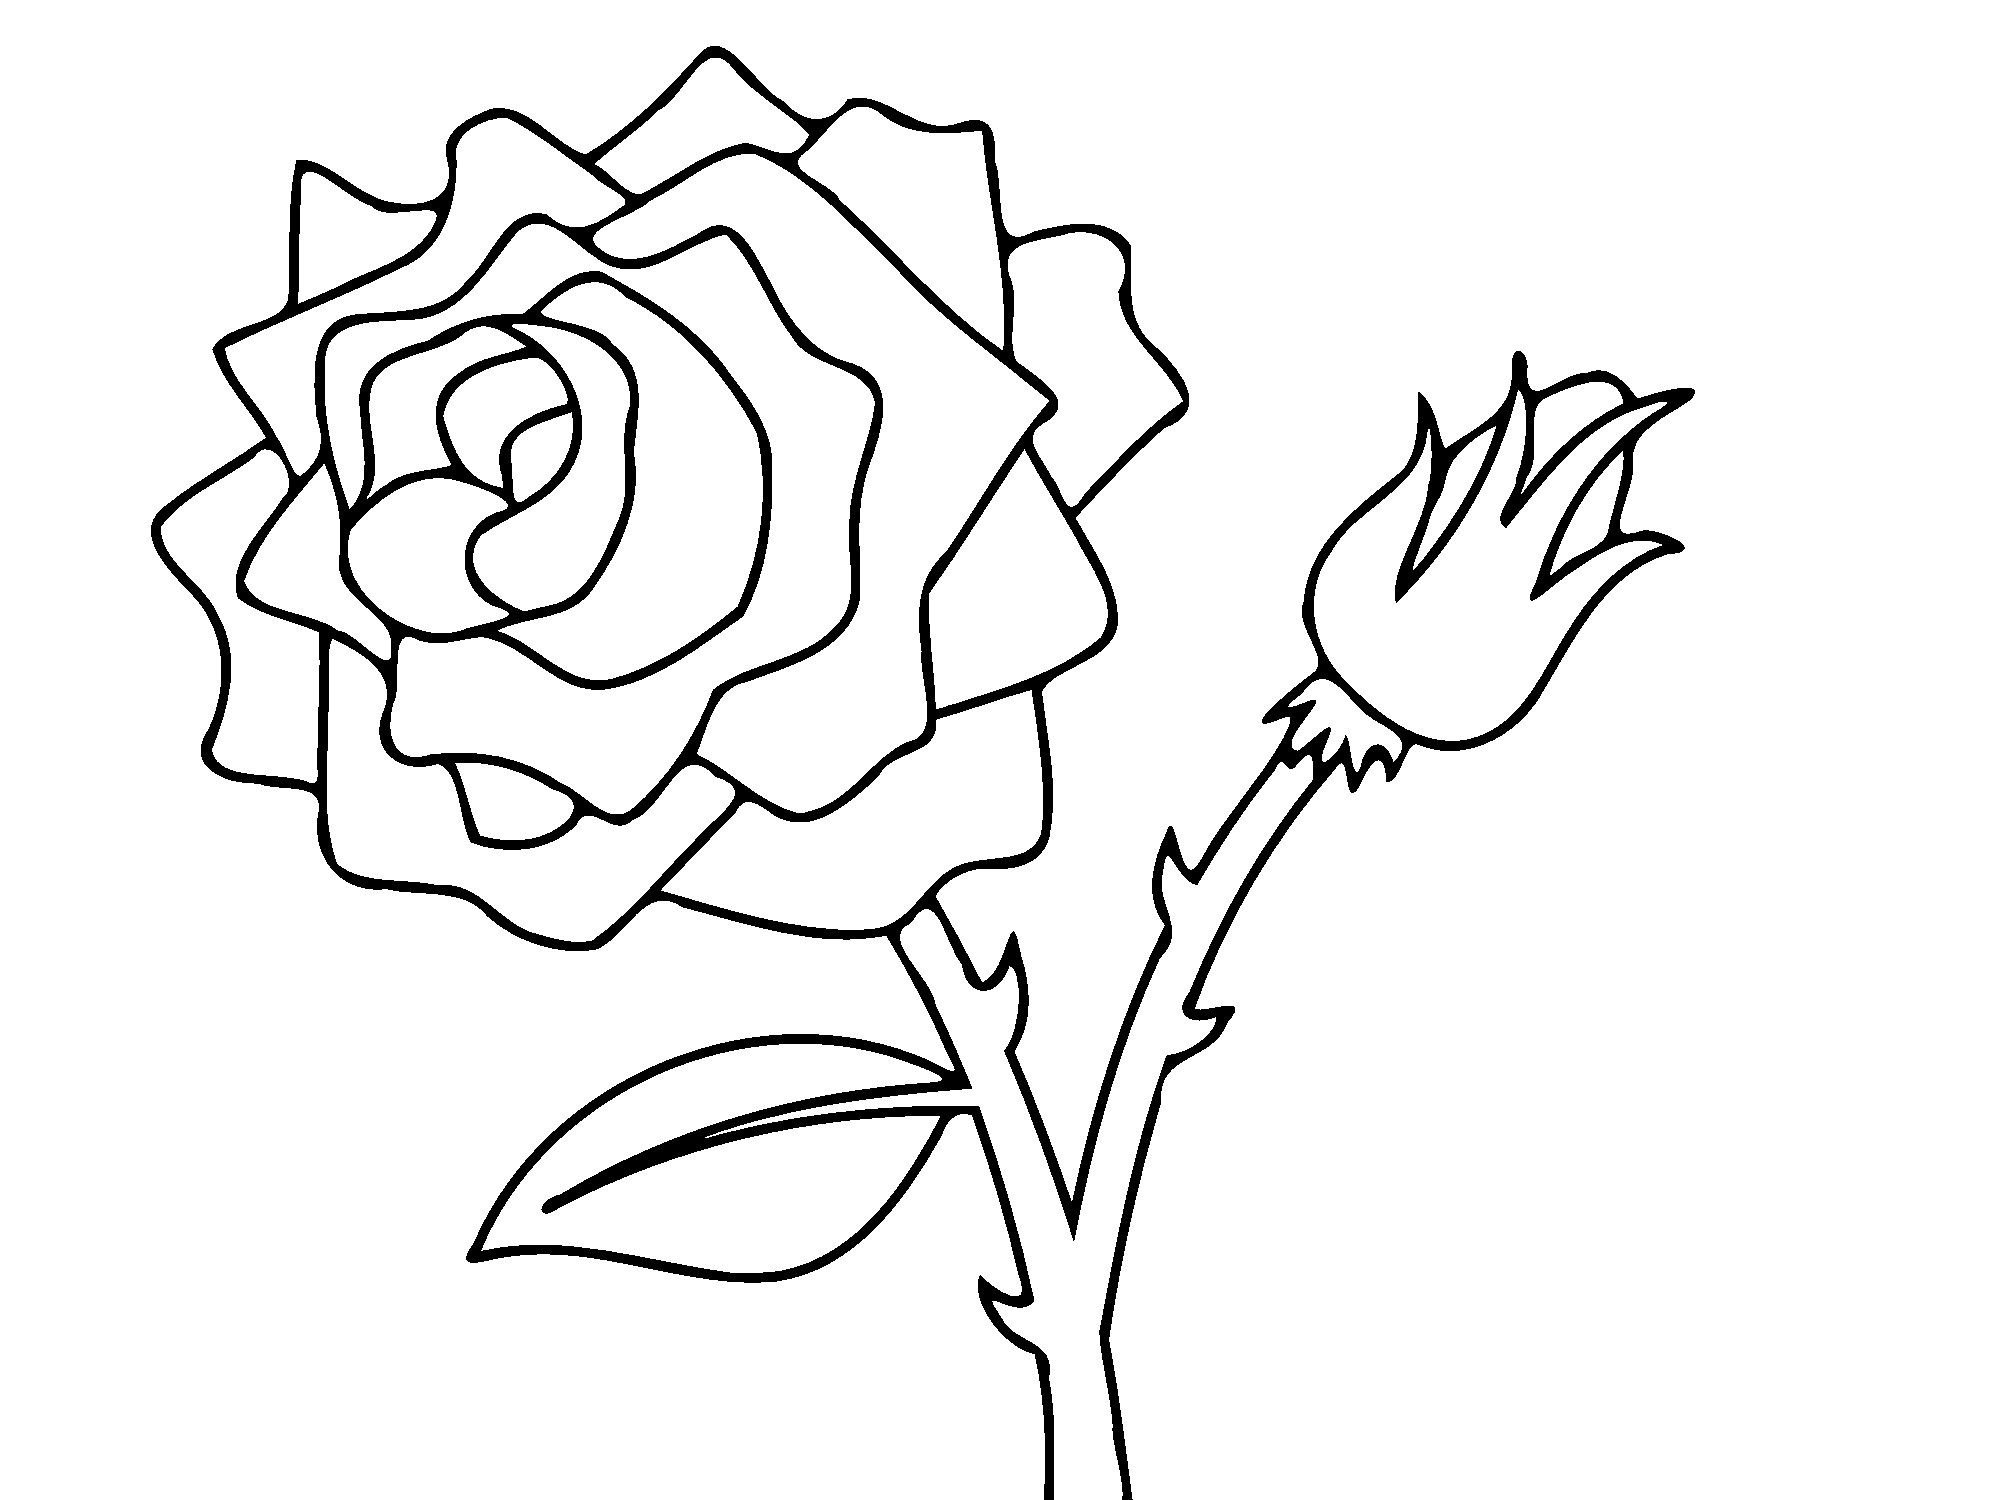 coloring sheet rose flower coloring pages rose coloring pages download and print rose coloring pages pages sheet coloring coloring flower rose